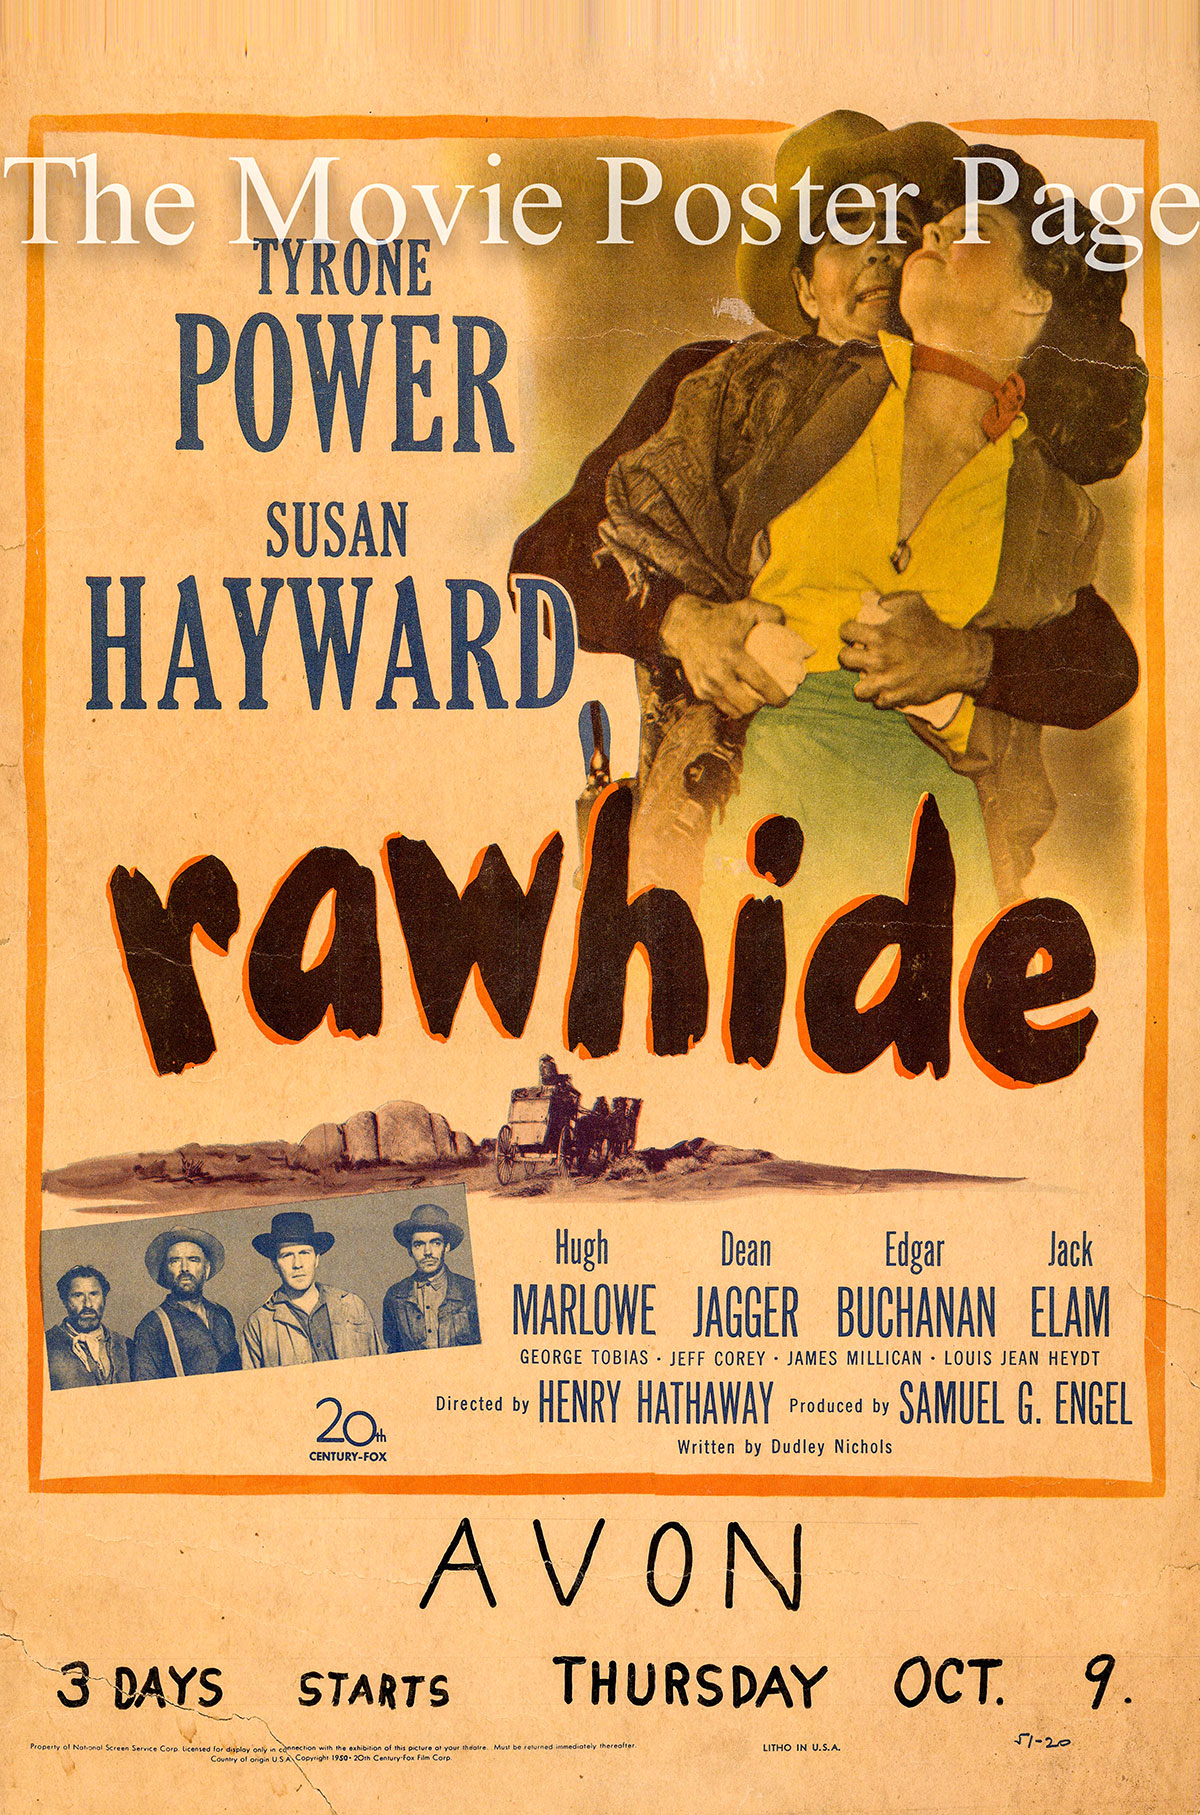 pictured is a US window card for the 1951 Henry Hathaway film Rawhide starring Susan Hayward and Tyrone Power.